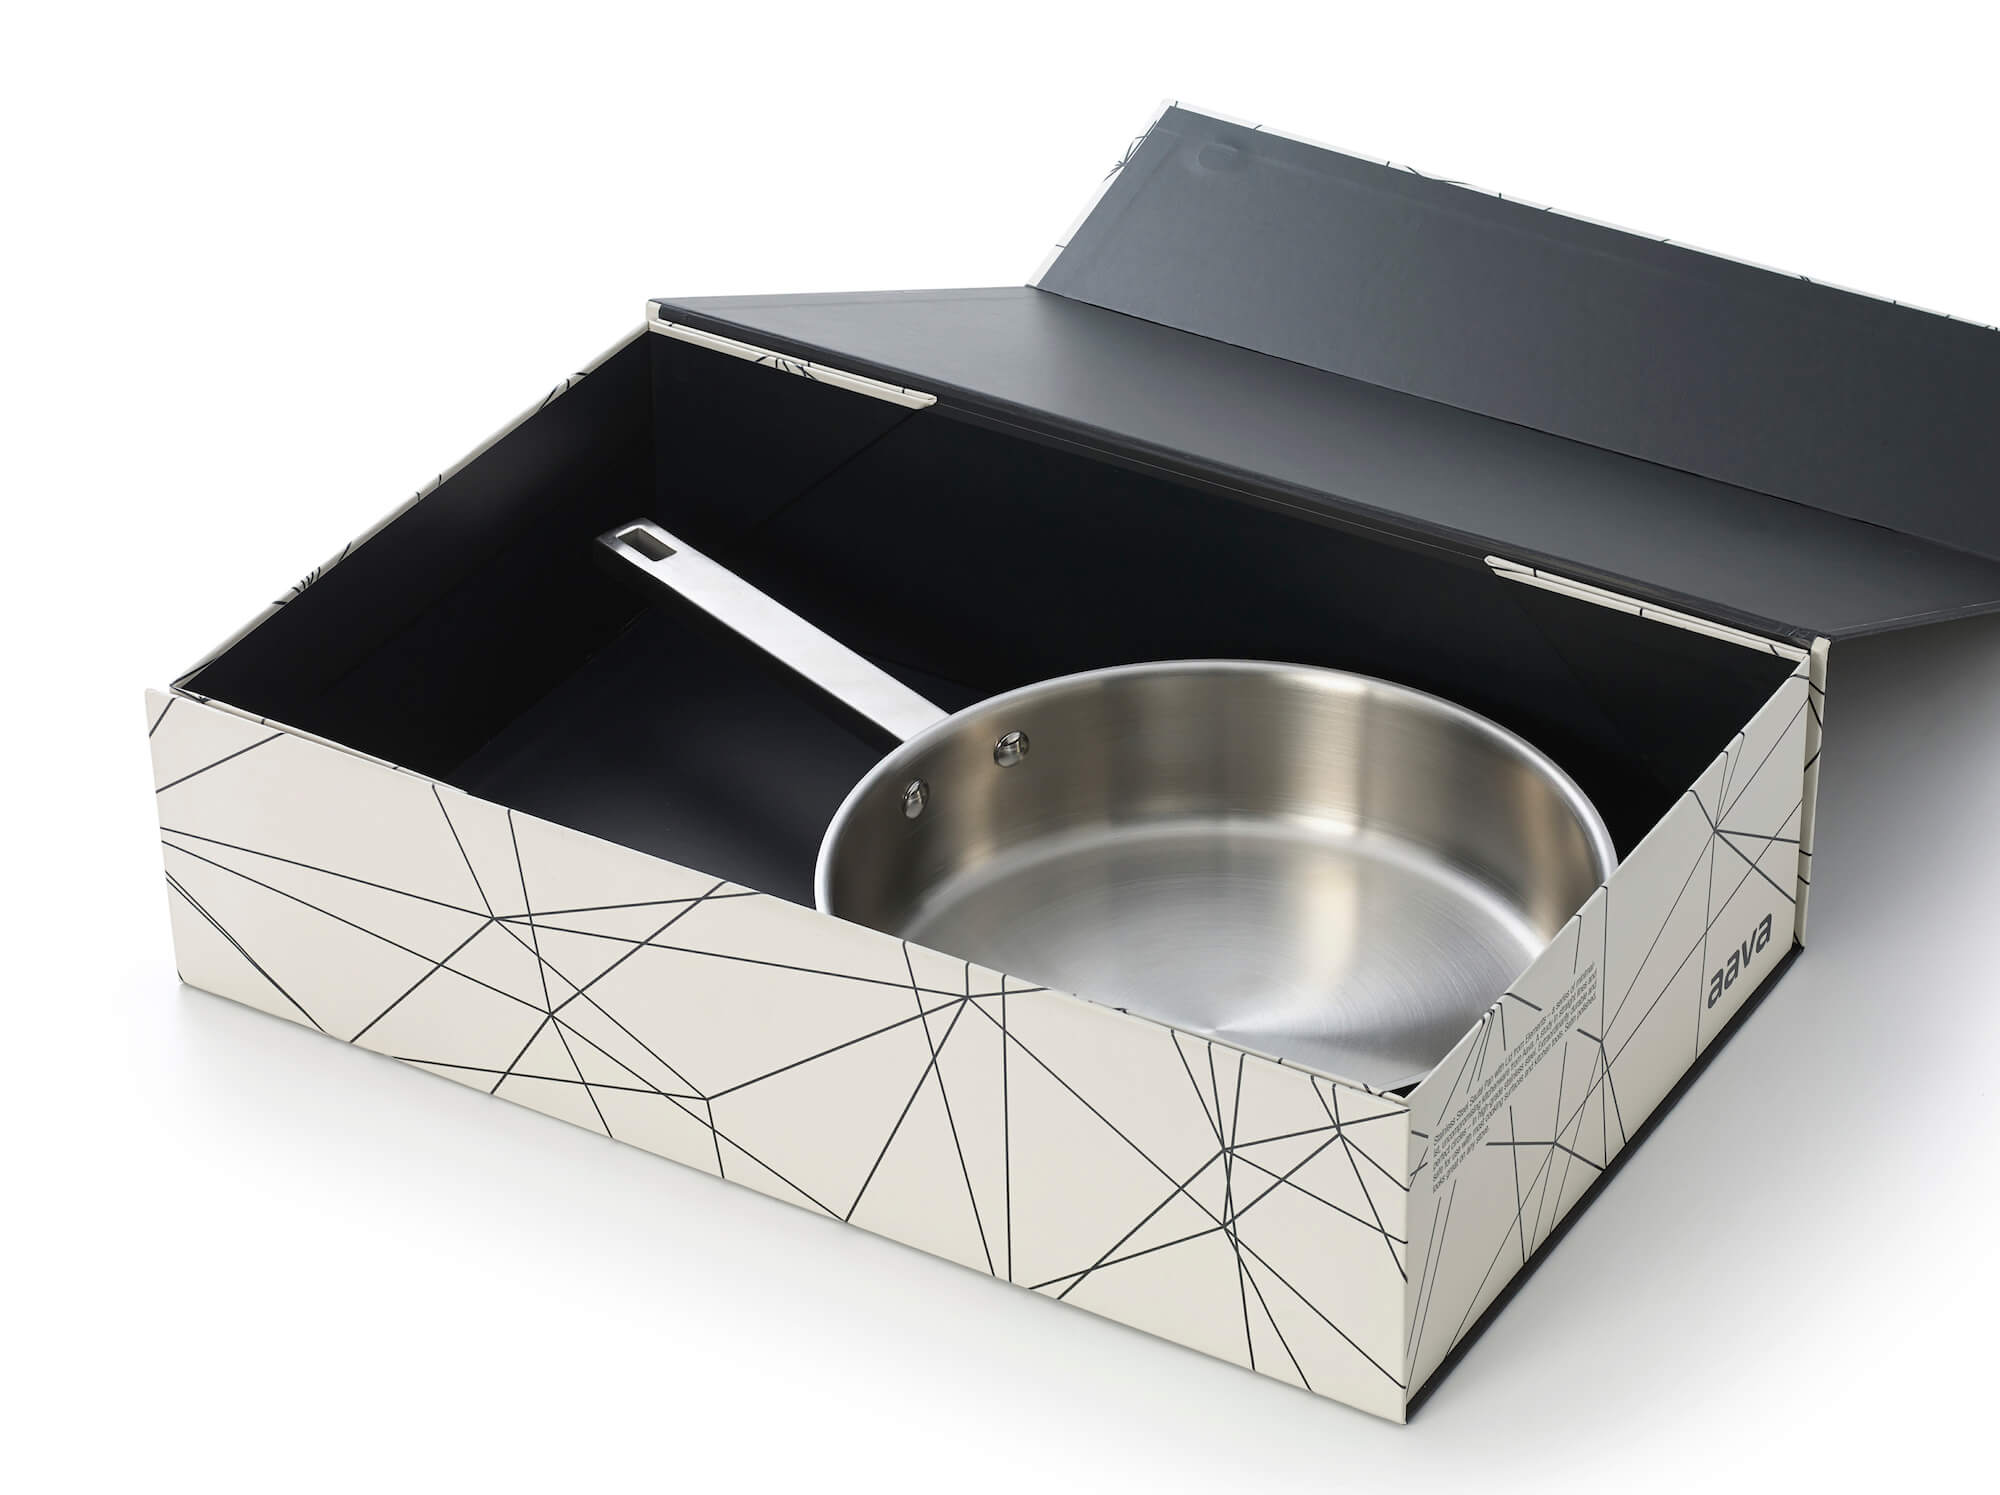 Aava Elements Stainless Steel Sauté Pan with lid